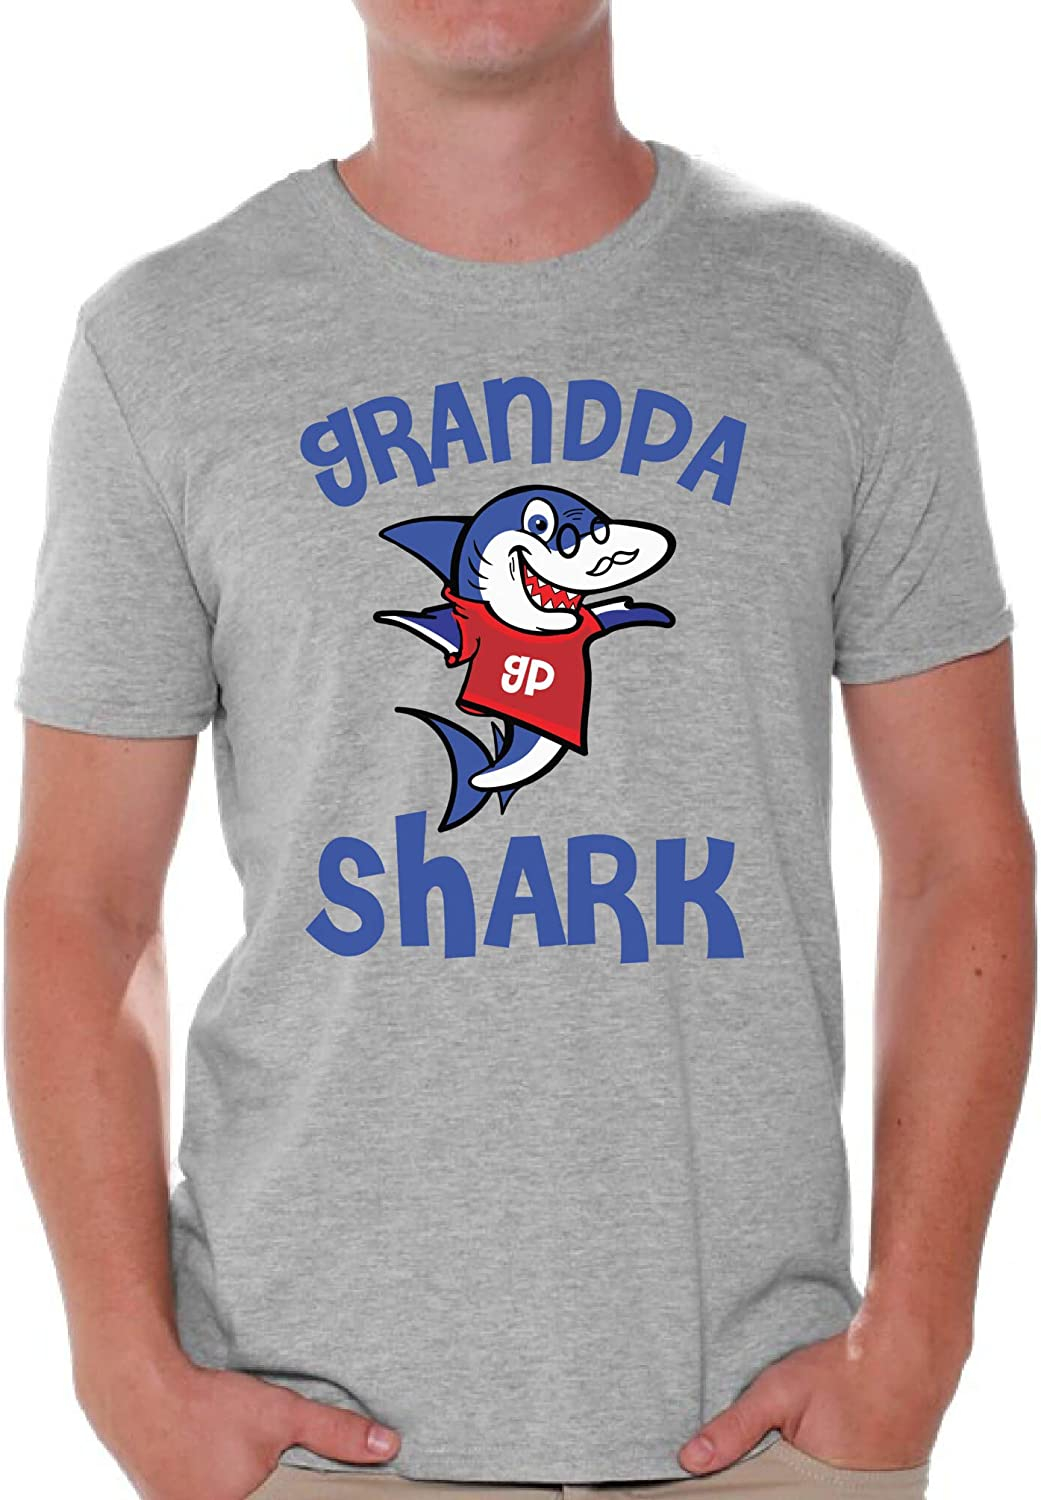 Awkward Styles Shark T Shirts Shark Family Matching Outfit Family Shark Party Gifts